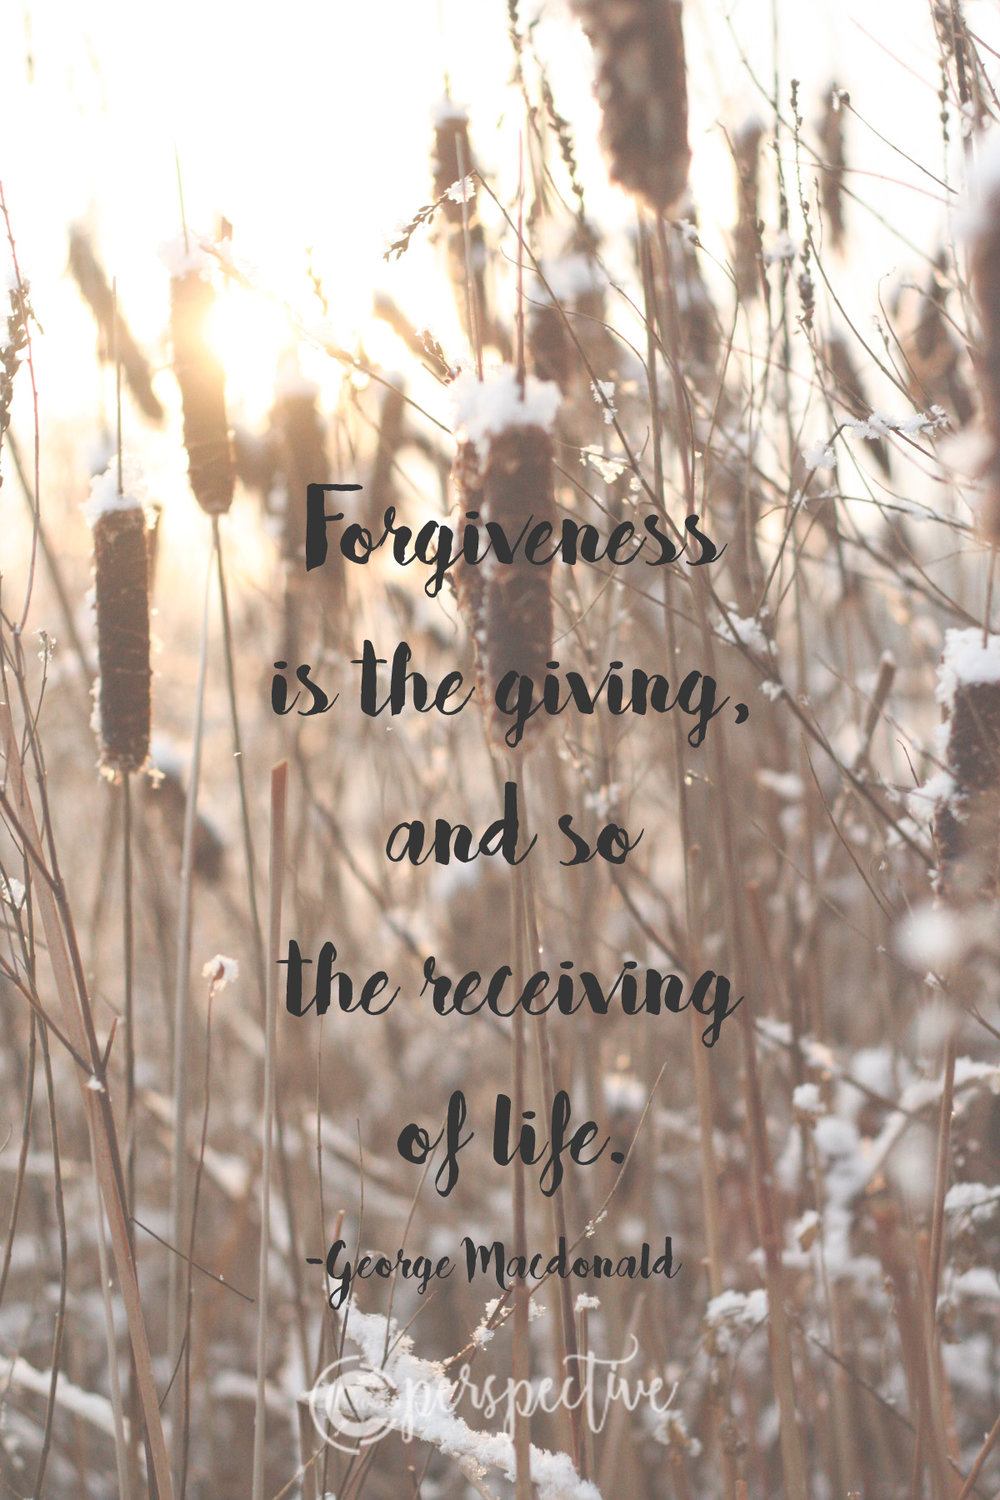 forgiveness quote macdonald